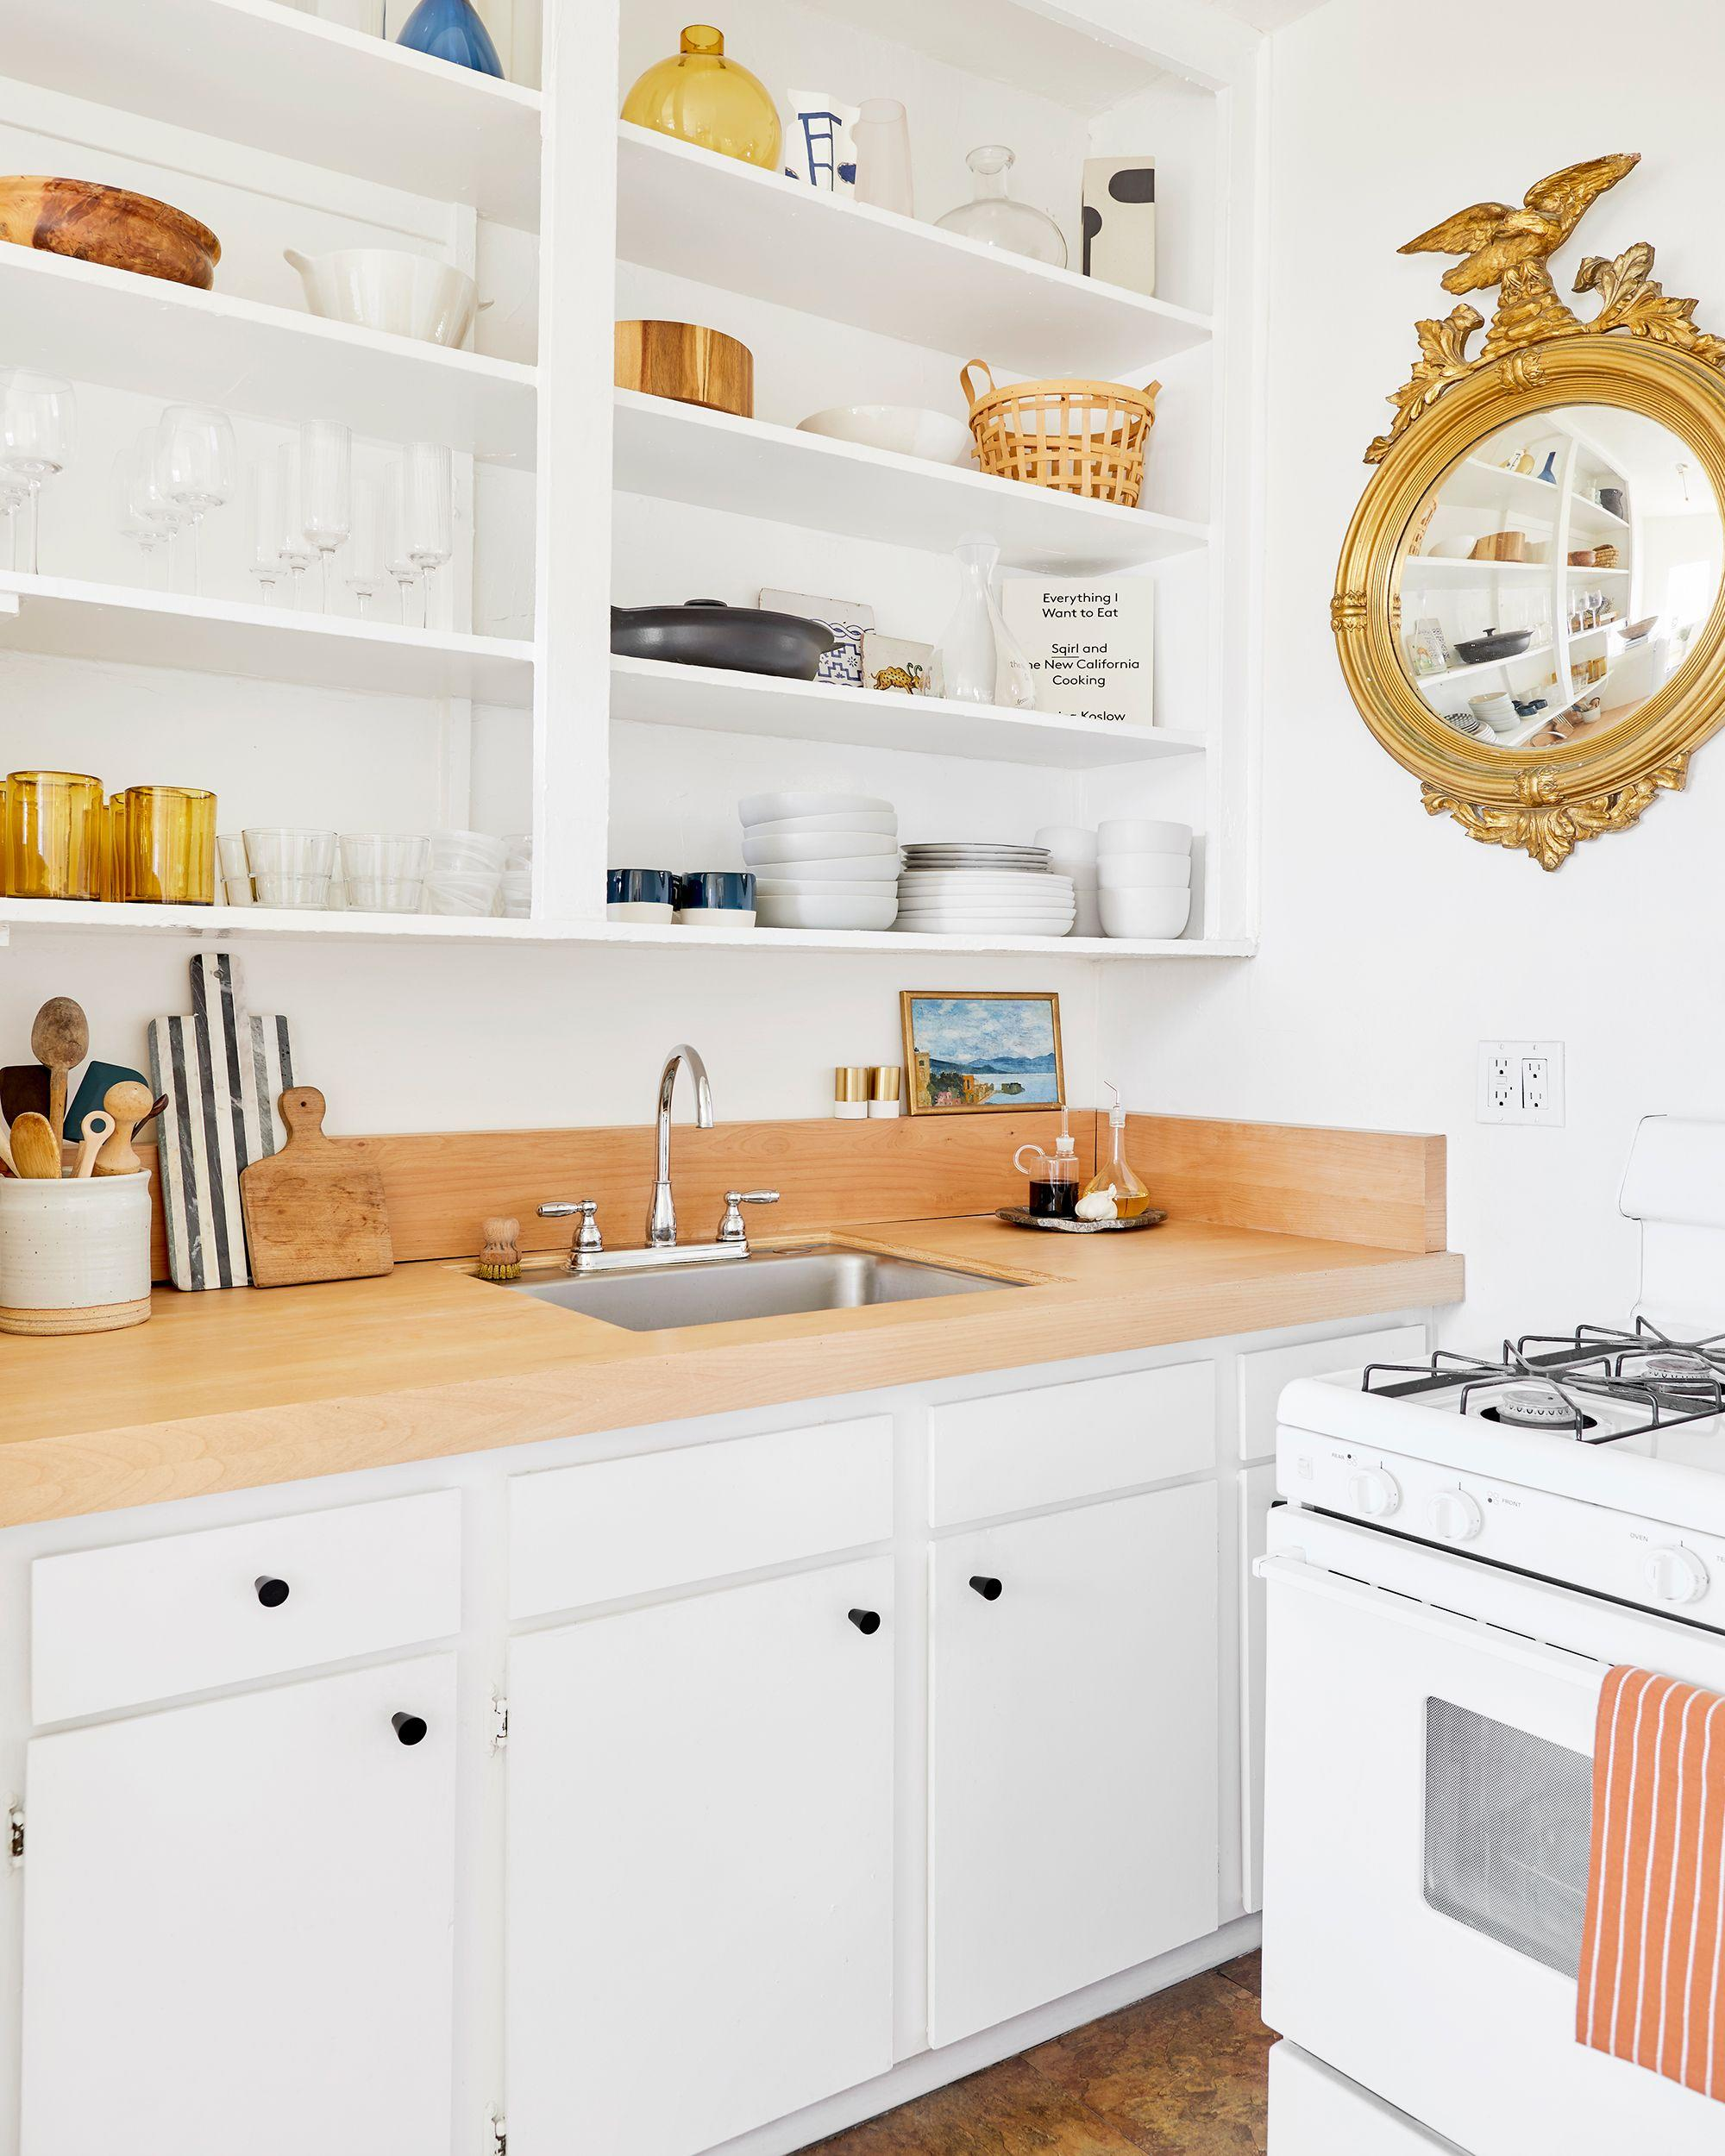 People Cleaning Kitchen: These Insanely Organized Cabinets Will Inspire You To Tidy Up